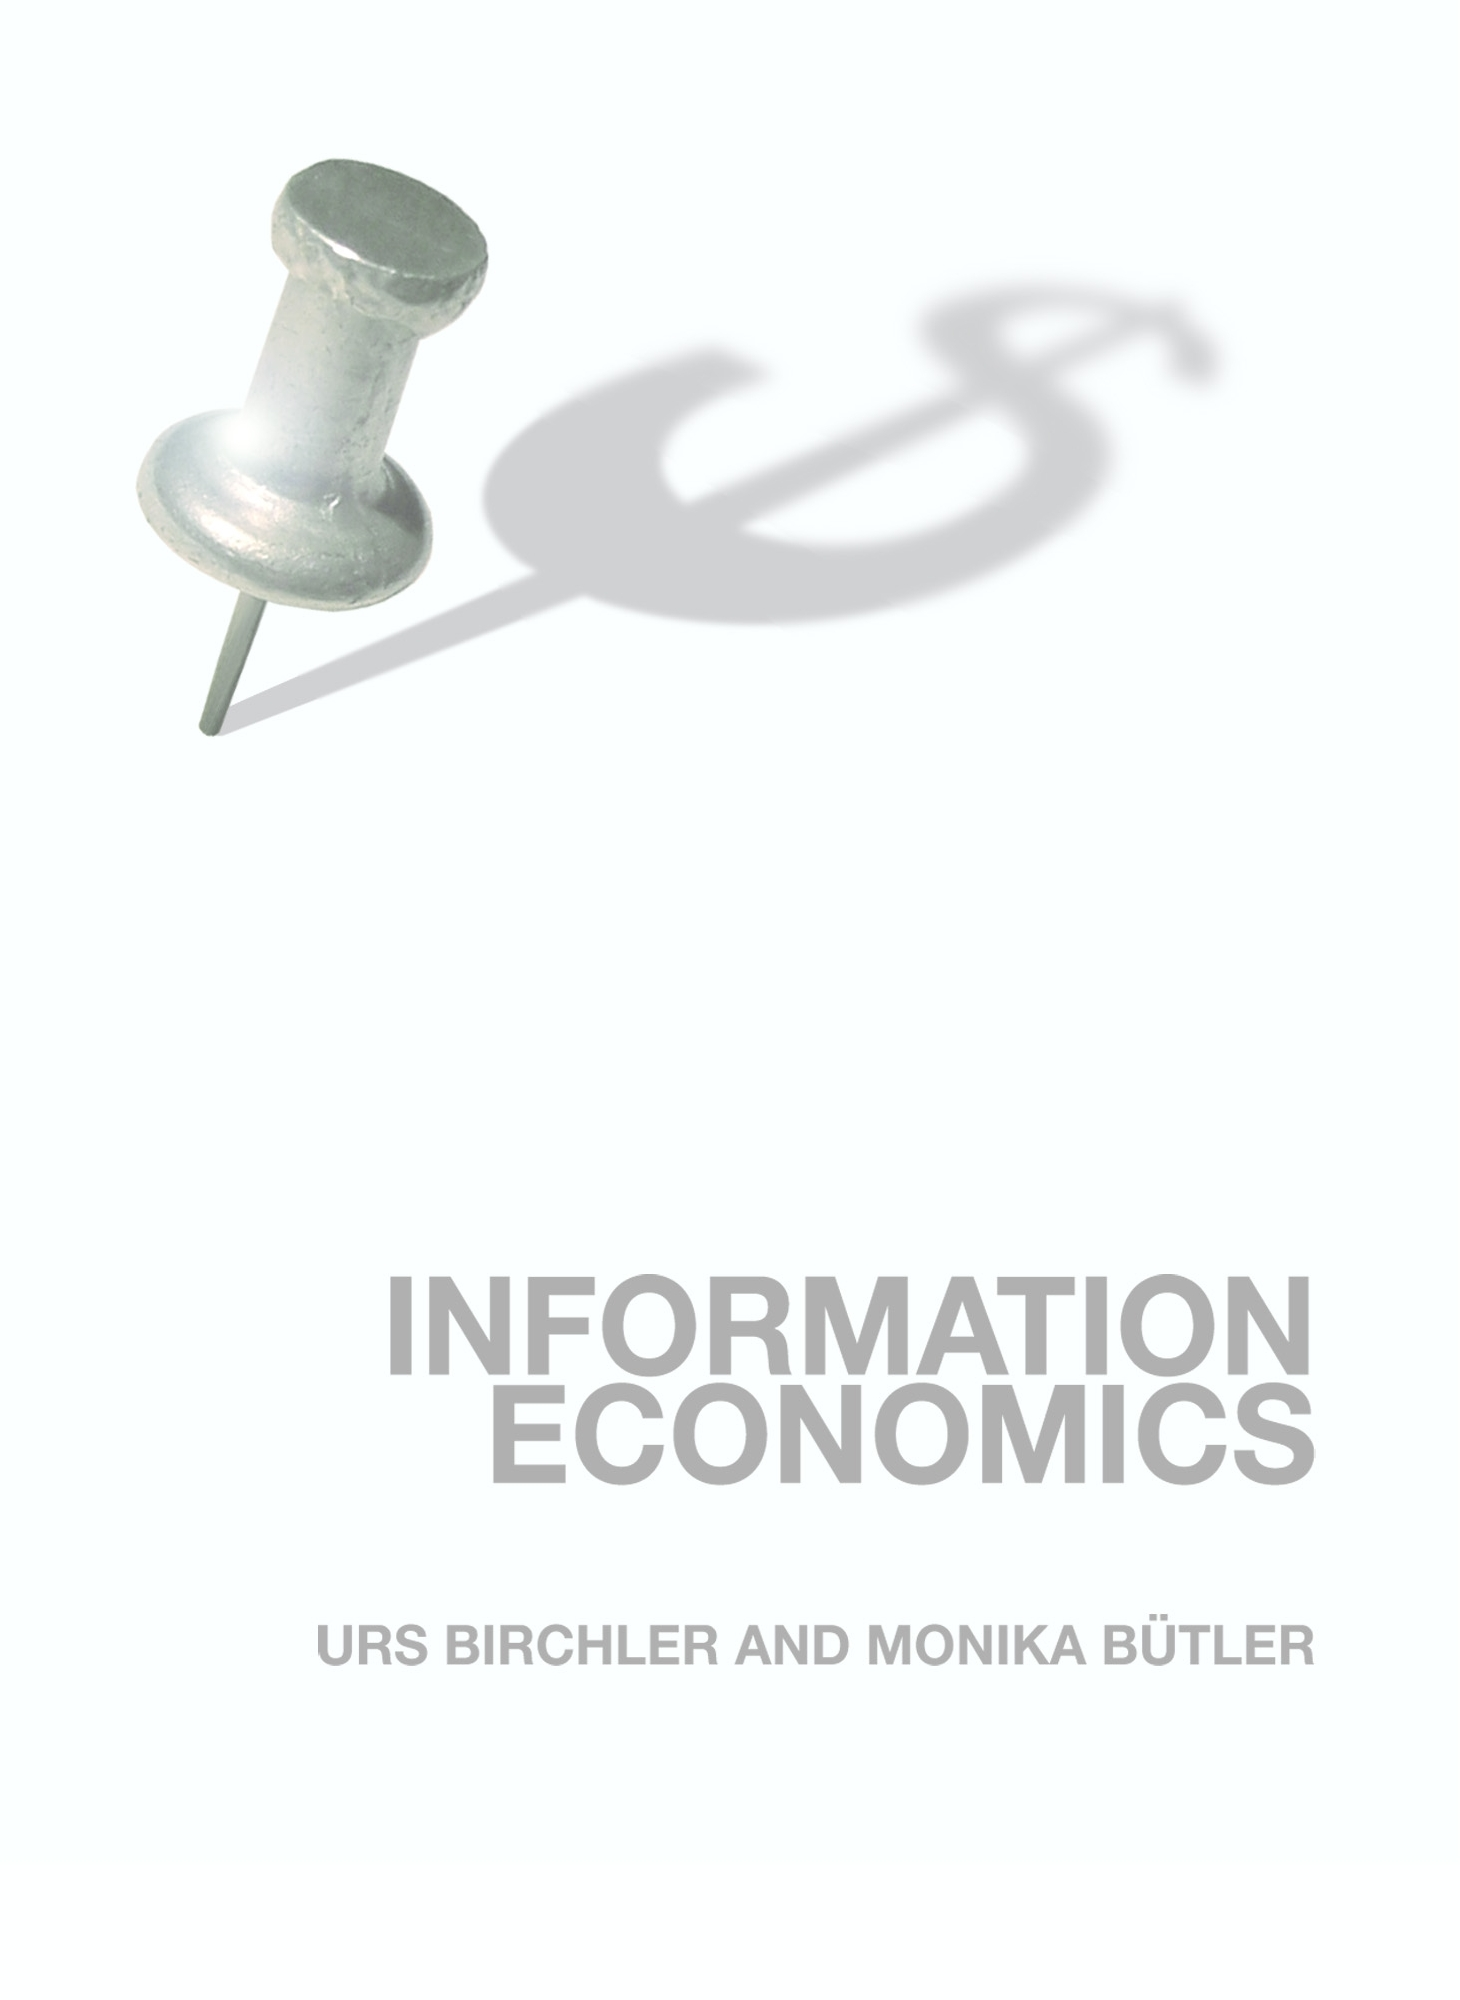 report on macroeconomics Writing tips for economics research papers plamen nikolov, harvard university y june 10, 2013 1 general tips about writing style when i read your term papers, i look for your ability to motivate your question using economic.